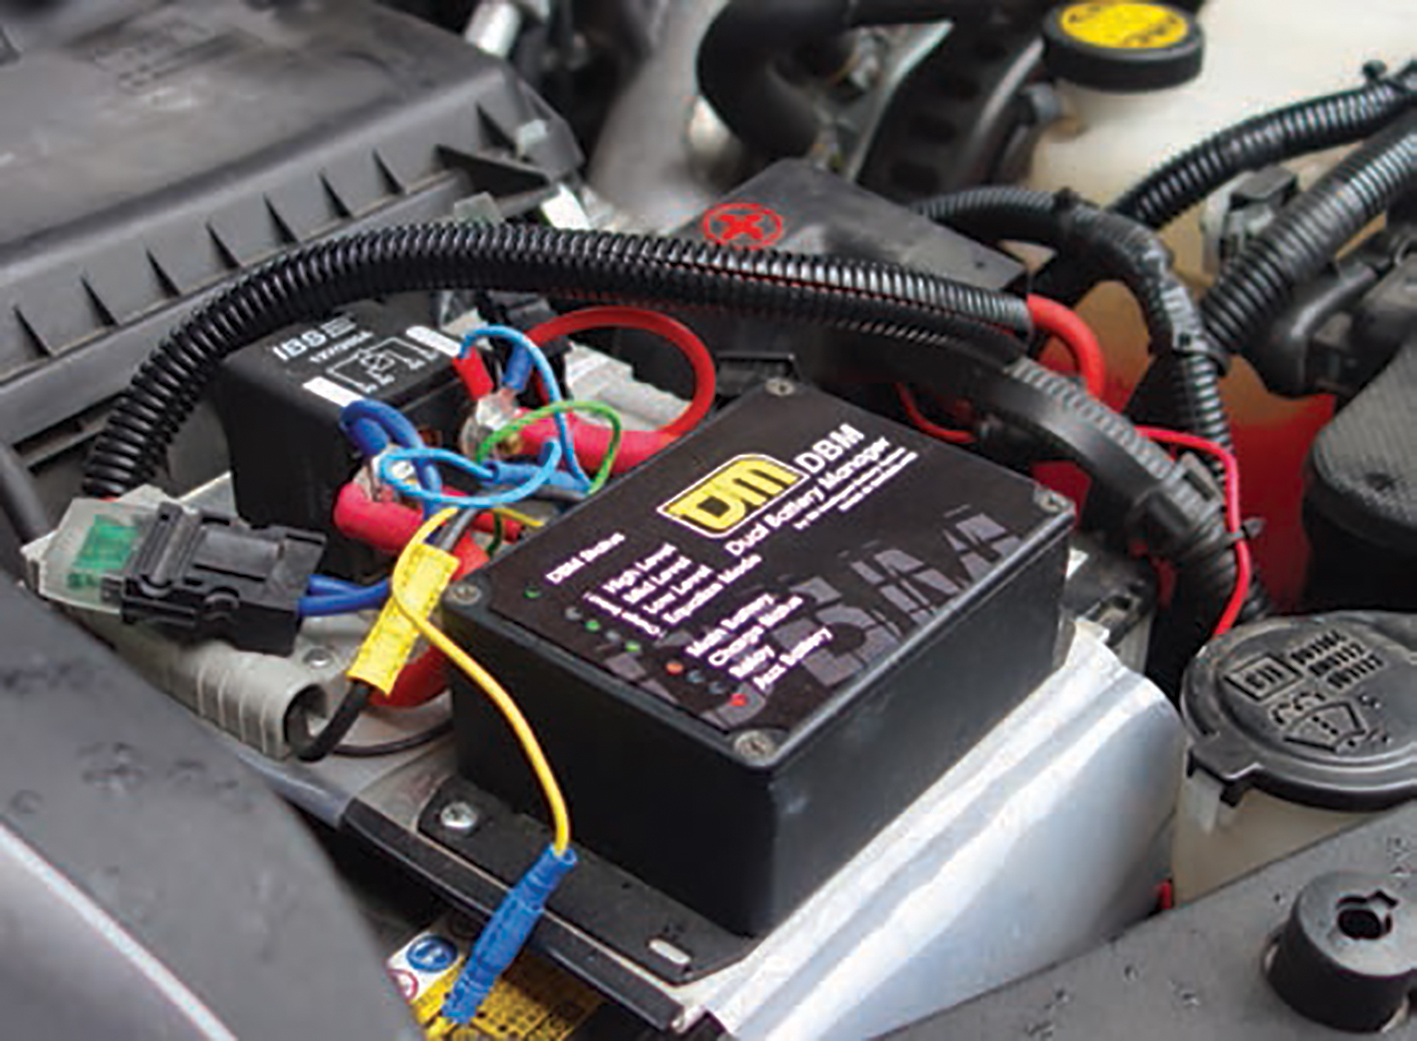 TJM 2 LE tjm dual battery manager aaa magazine tjm dual battery system wiring diagram at readyjetset.co